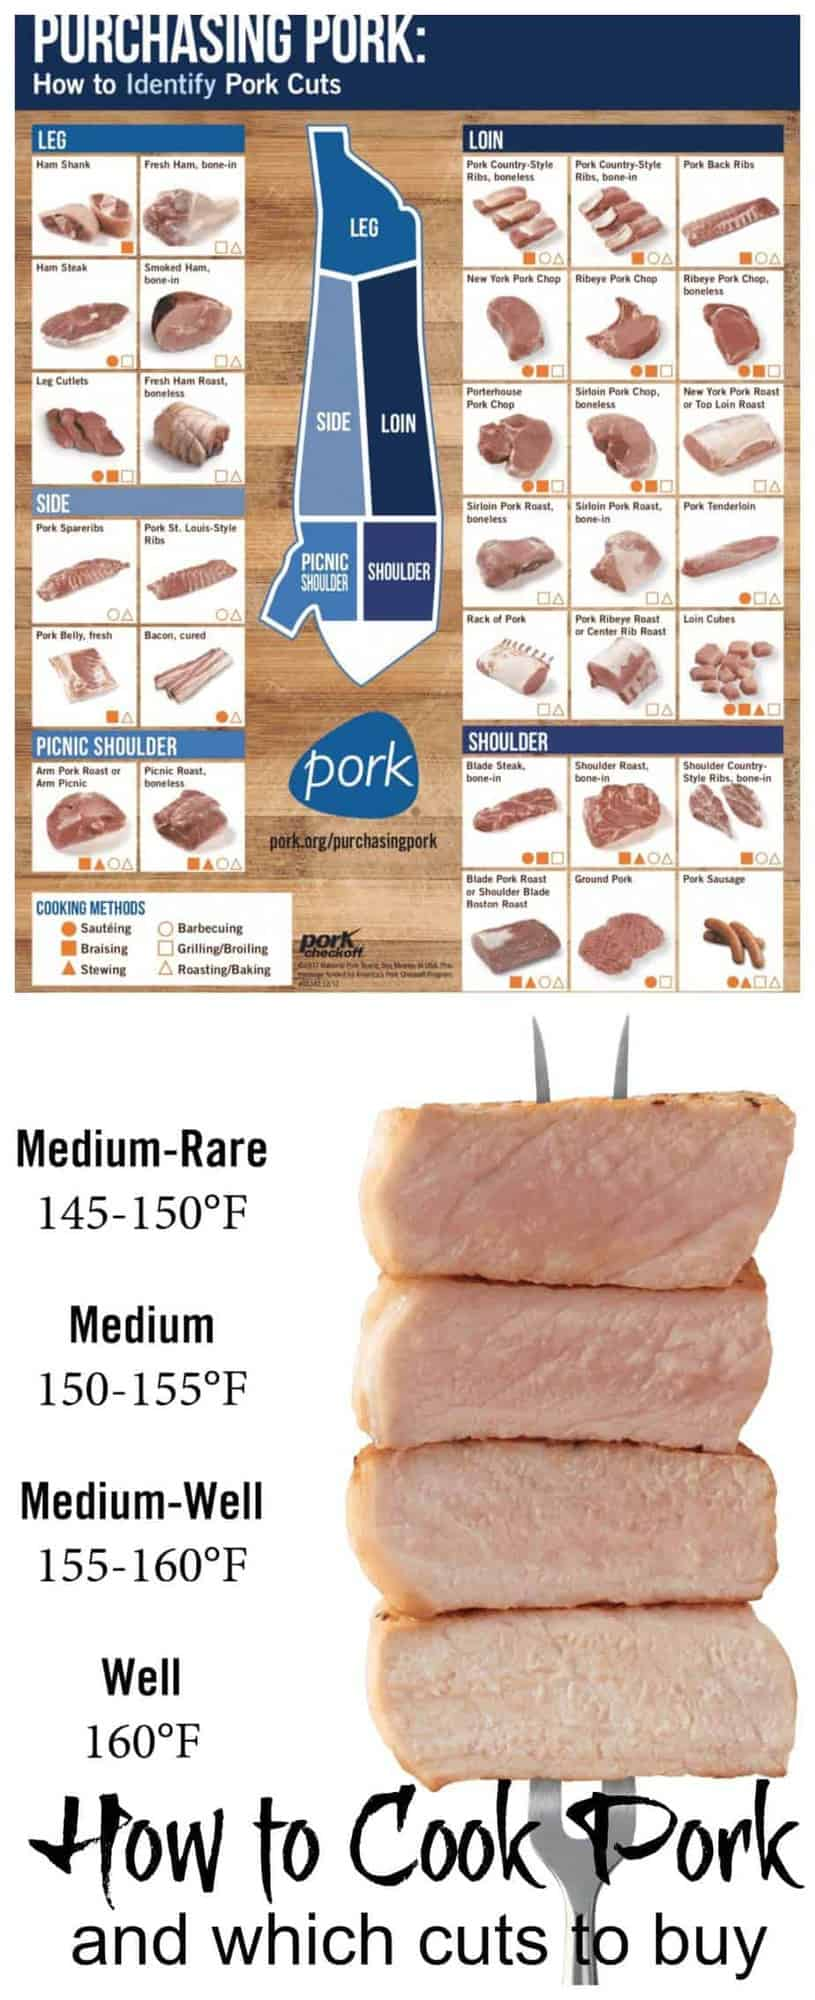 Demystify how to cook various cuts of pork with this definitive guide on How to Cook Pork and Choose the Right Cuts of Pork for Recipes.